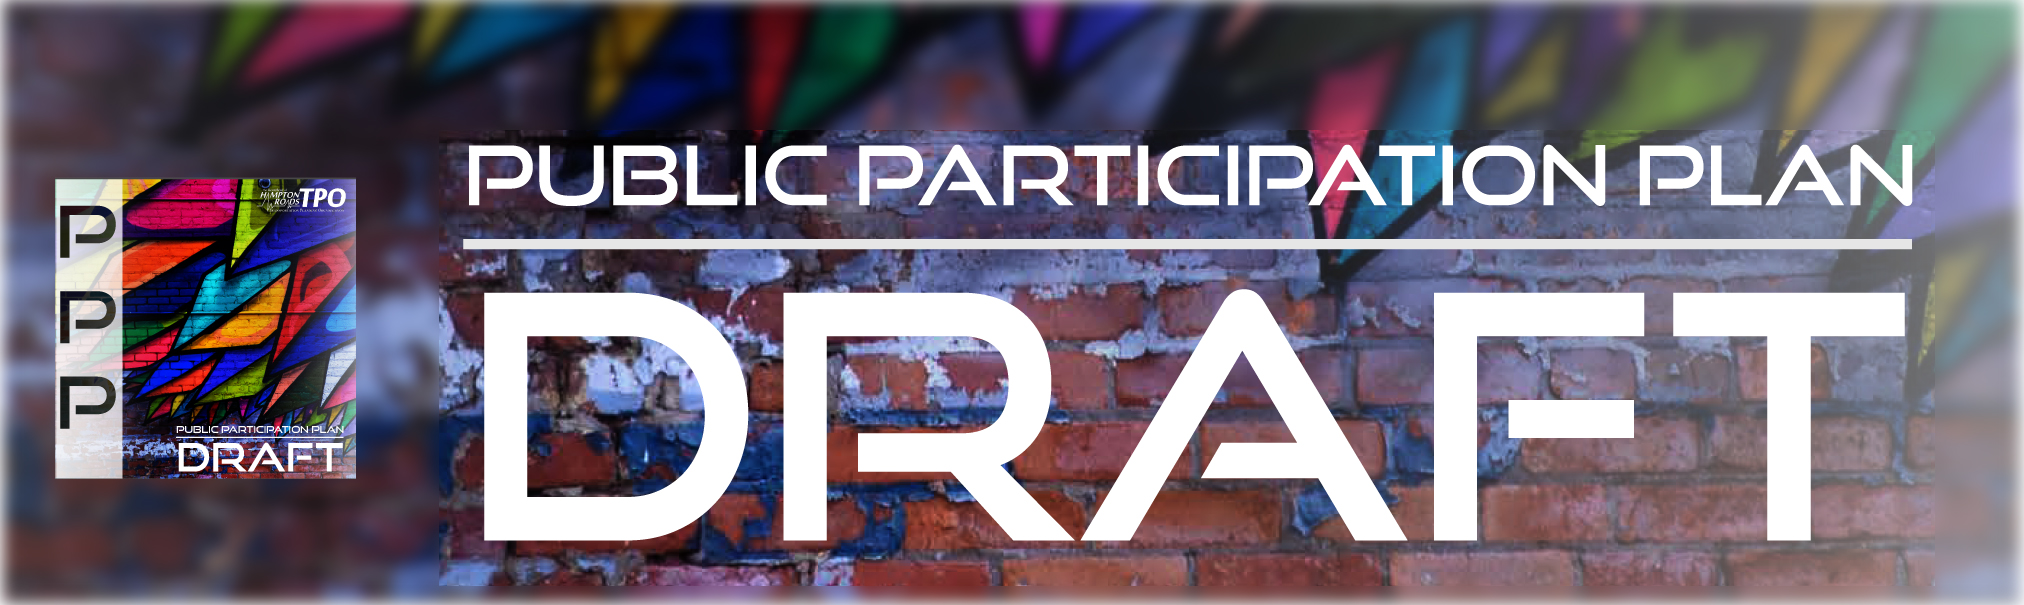 Let us know what you think of the new Draft Public Participation Plan. The public comment period ends November 17, 2017